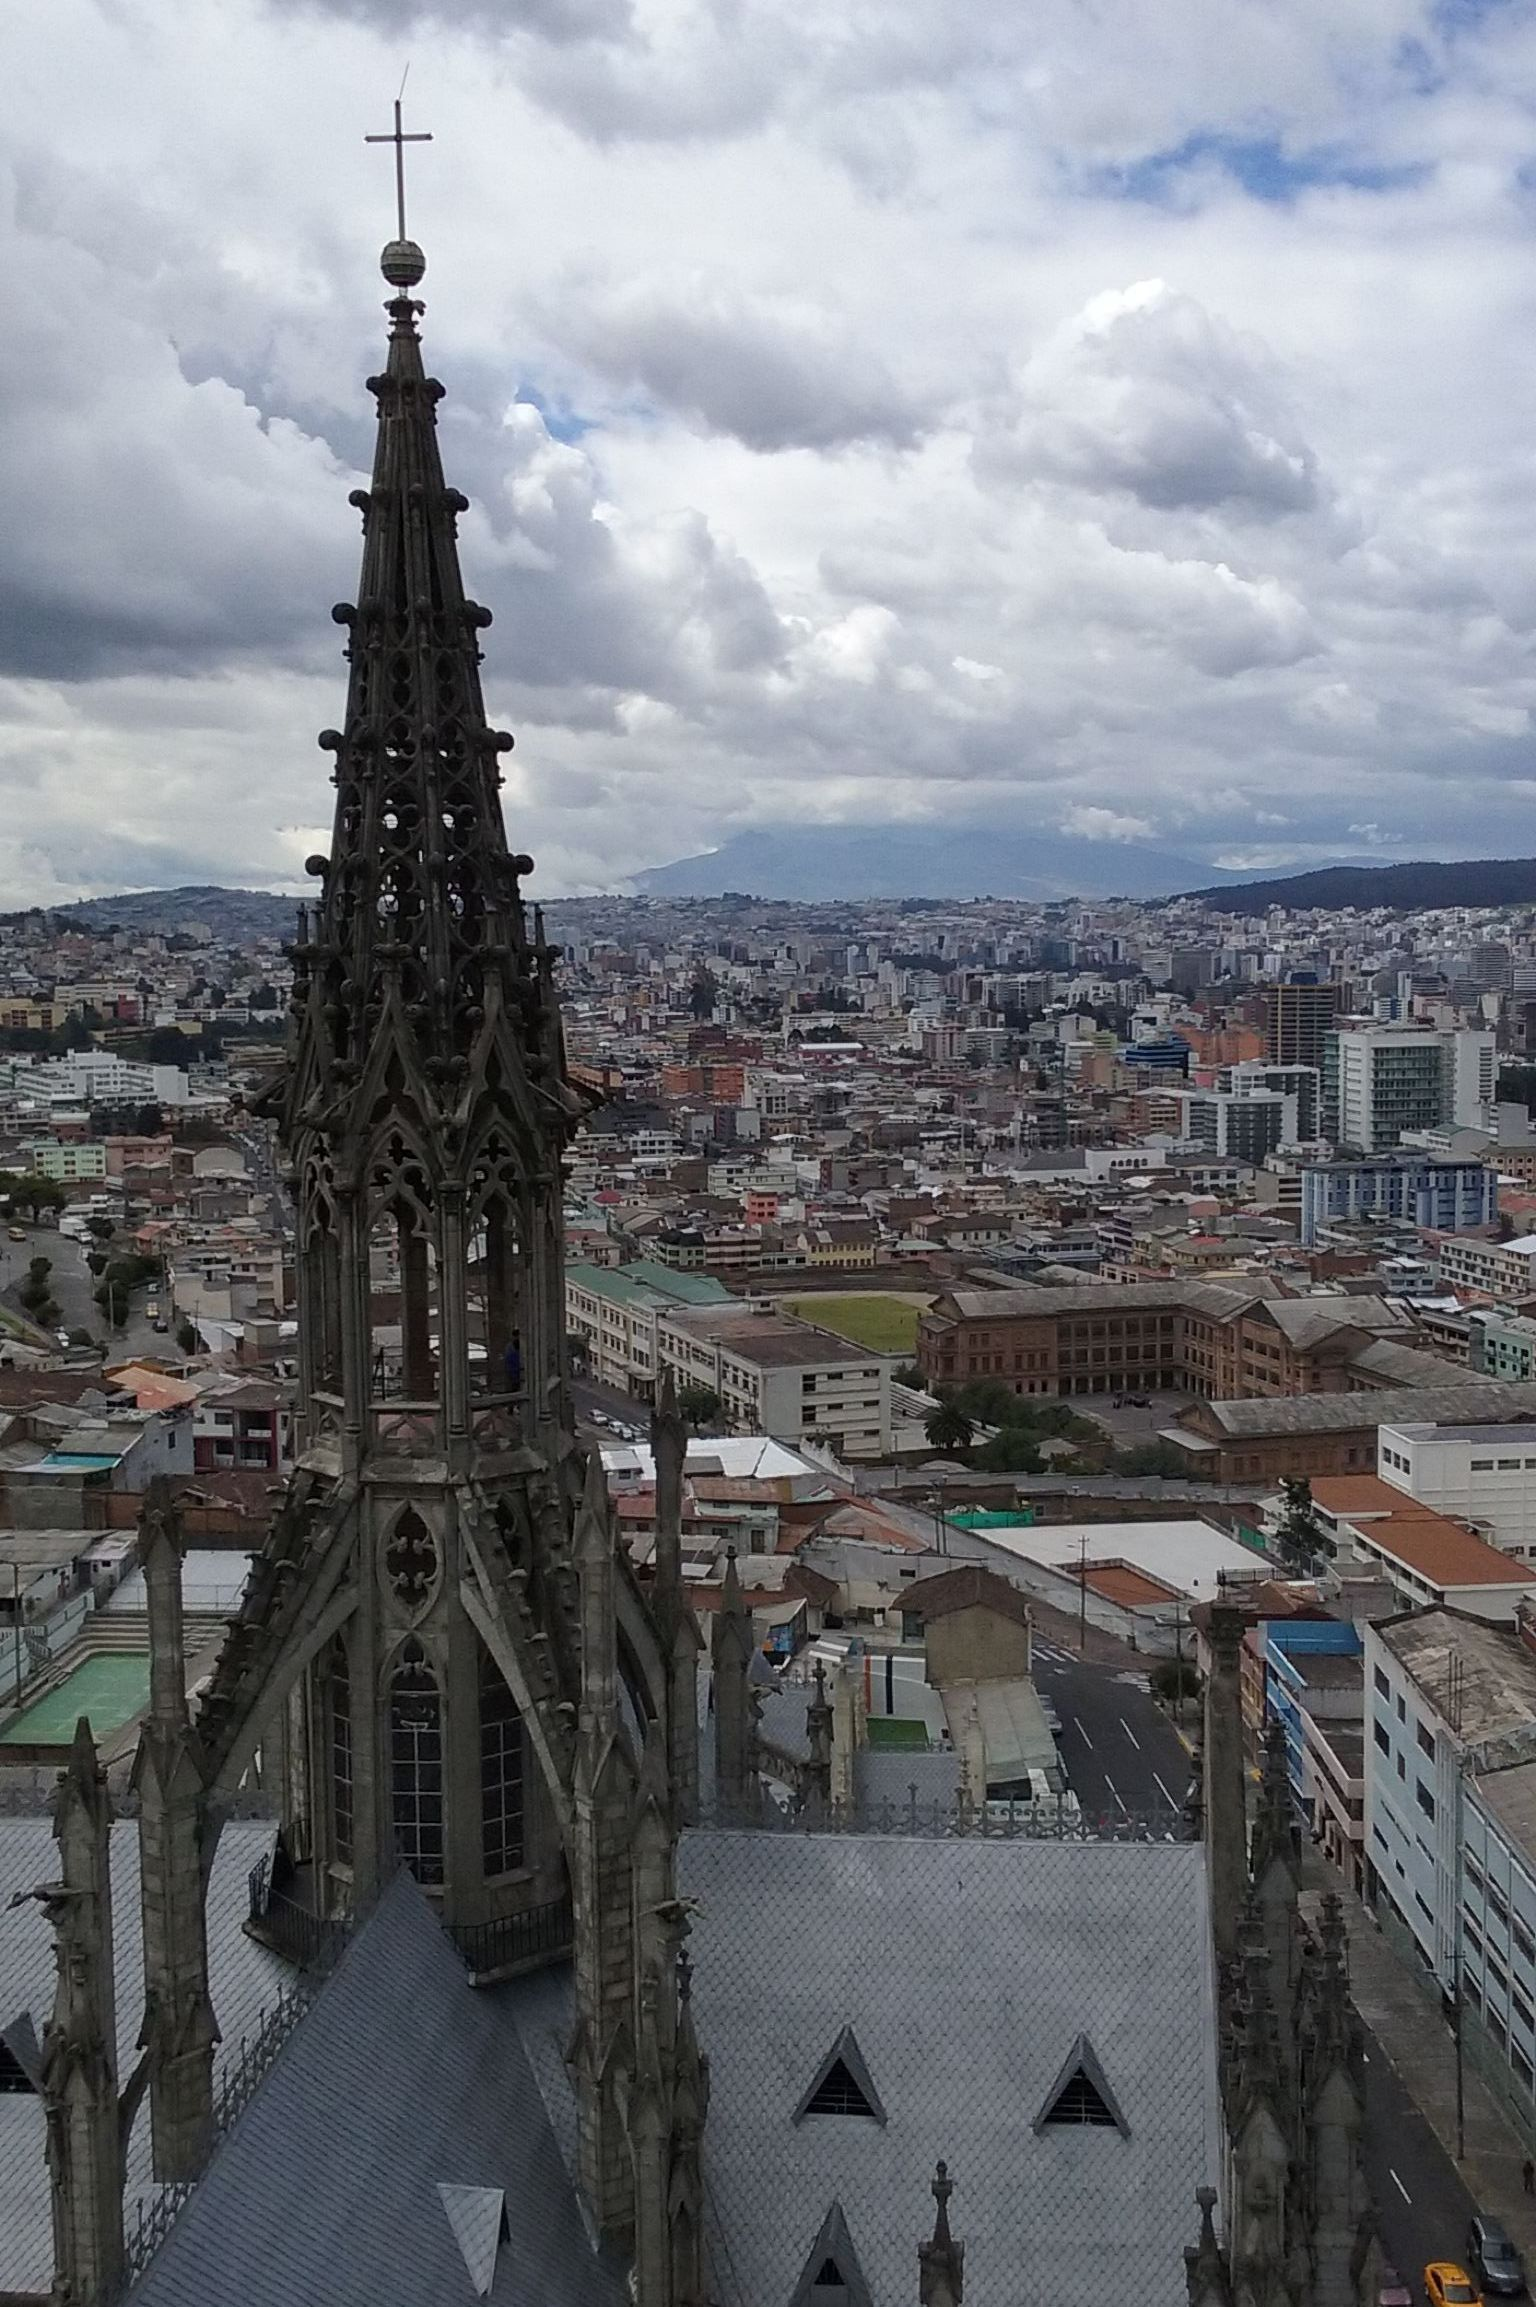 Quito's Top Attractions Pass with Airport Pick-Up (Save 10% on tickets)